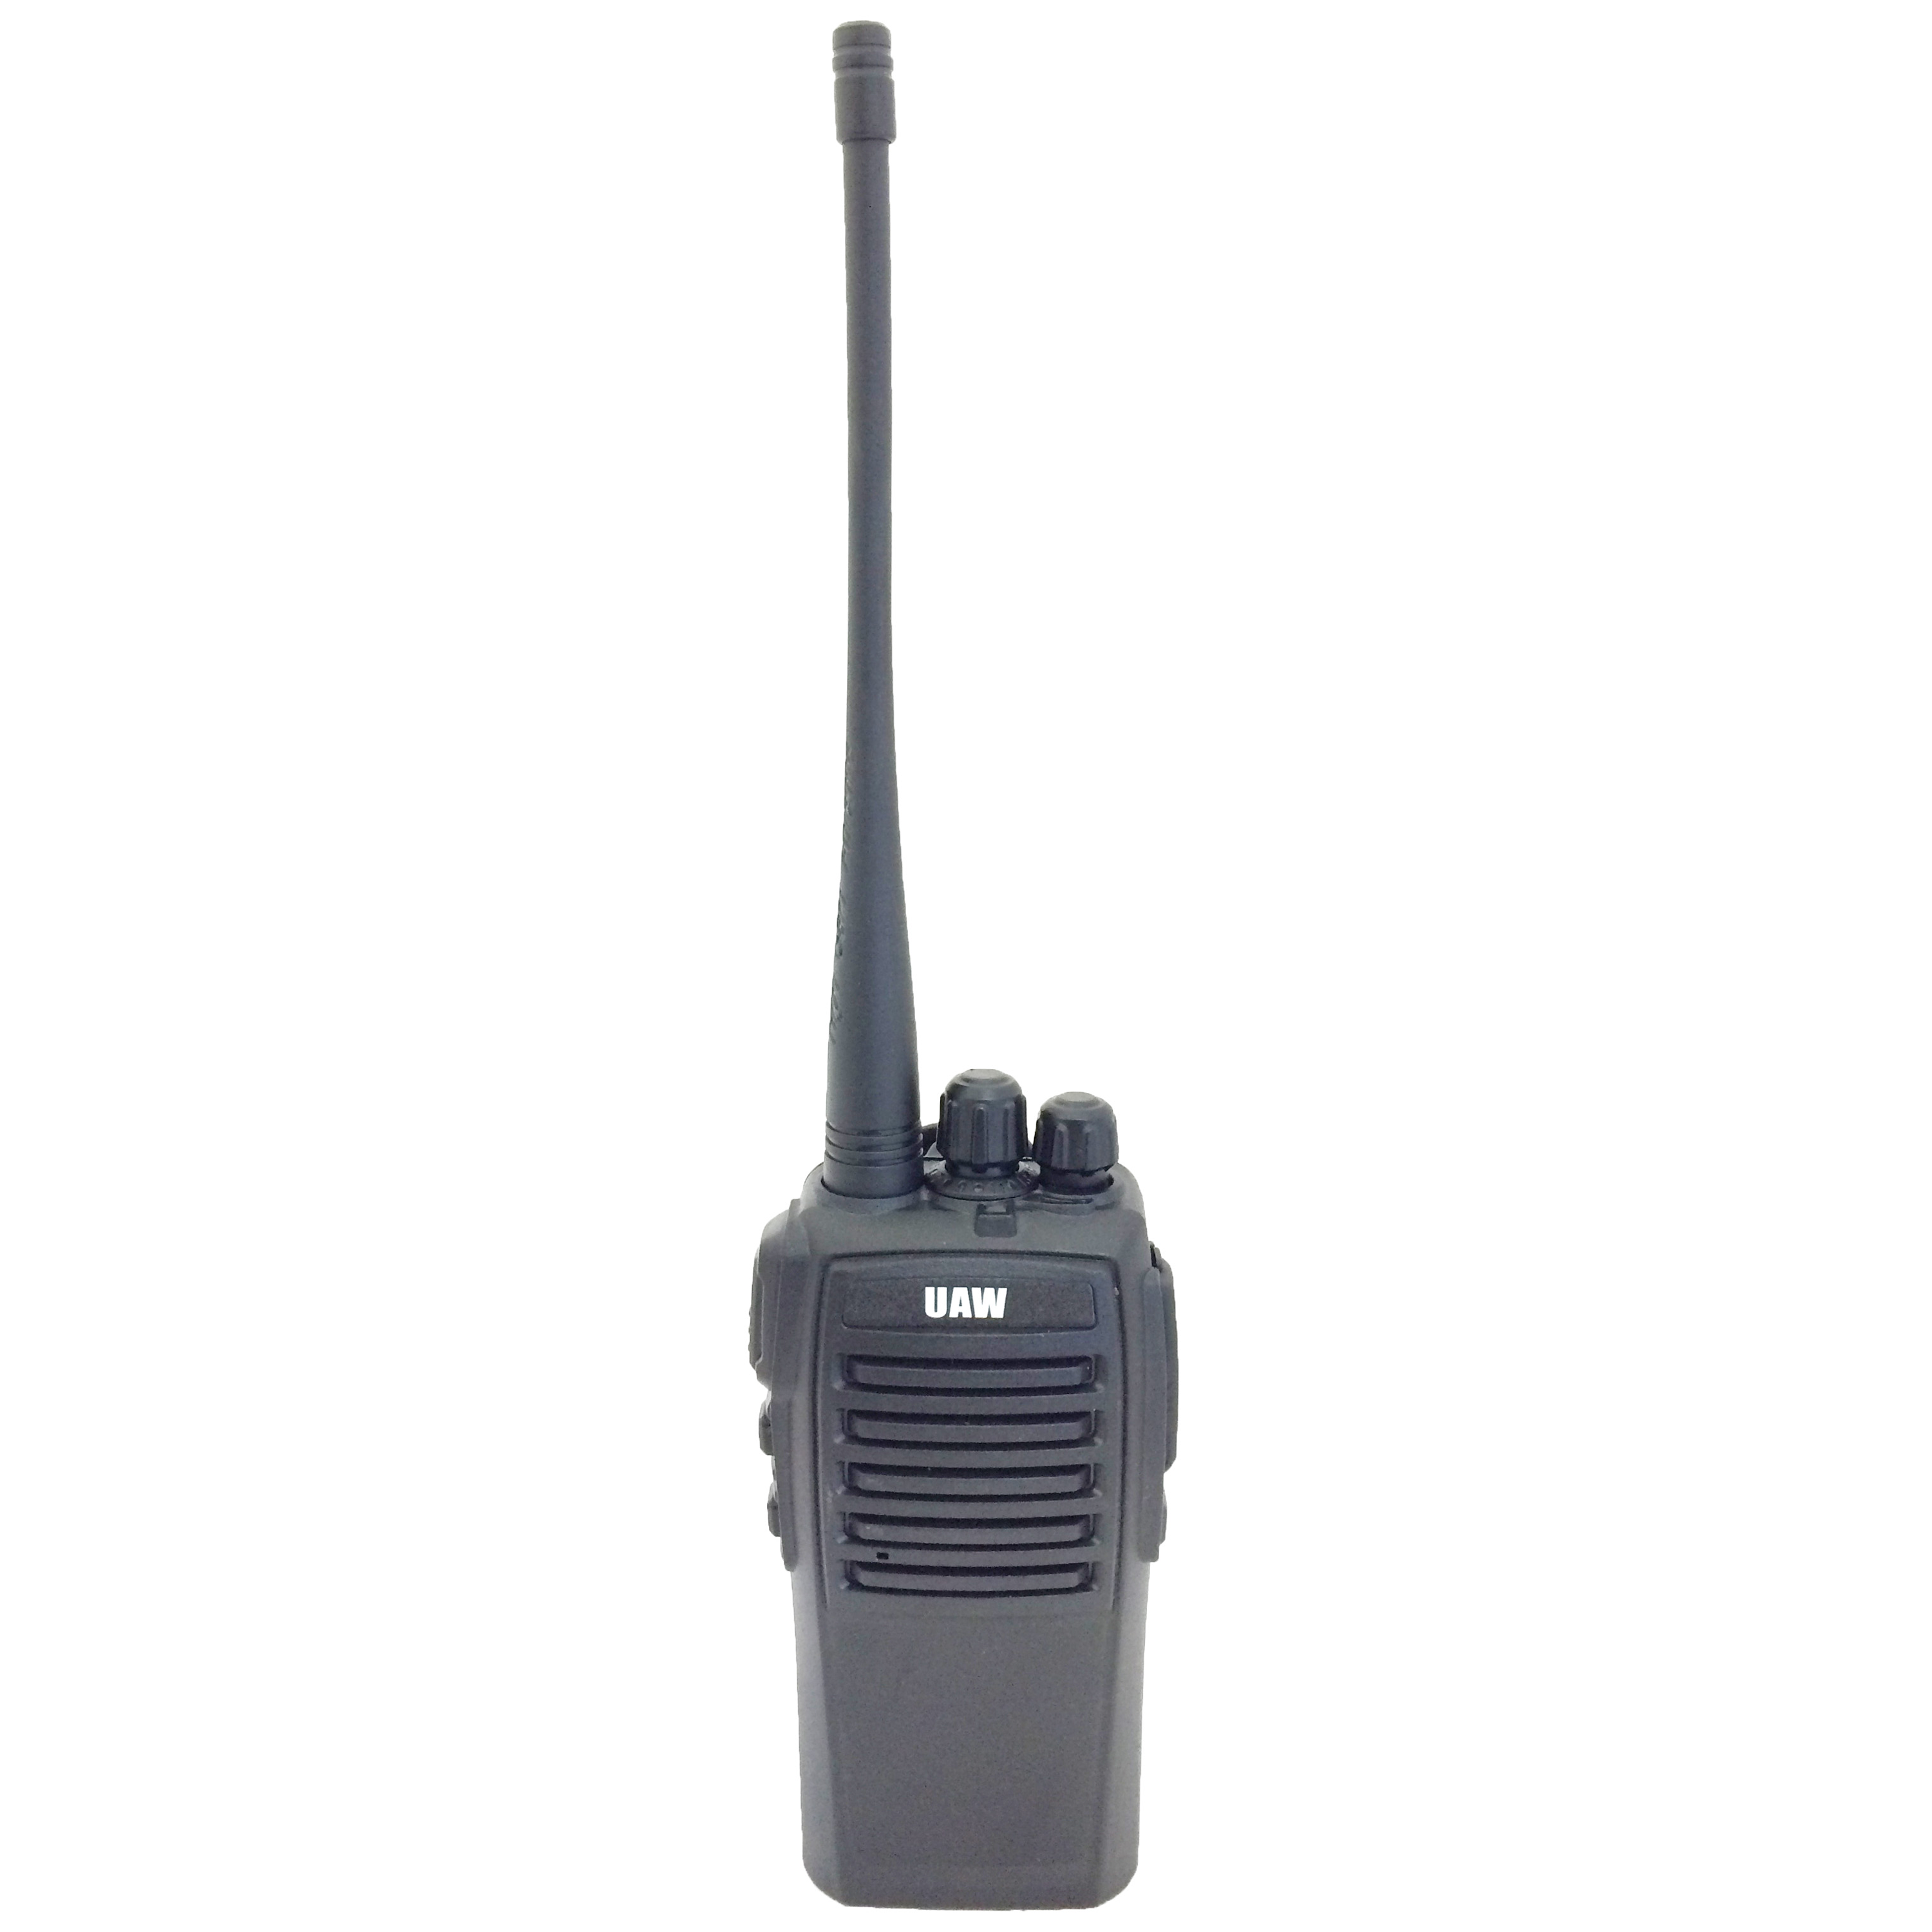 UA900 UHF Commercial Programmable Narrowband Radio with Li-ion Battery